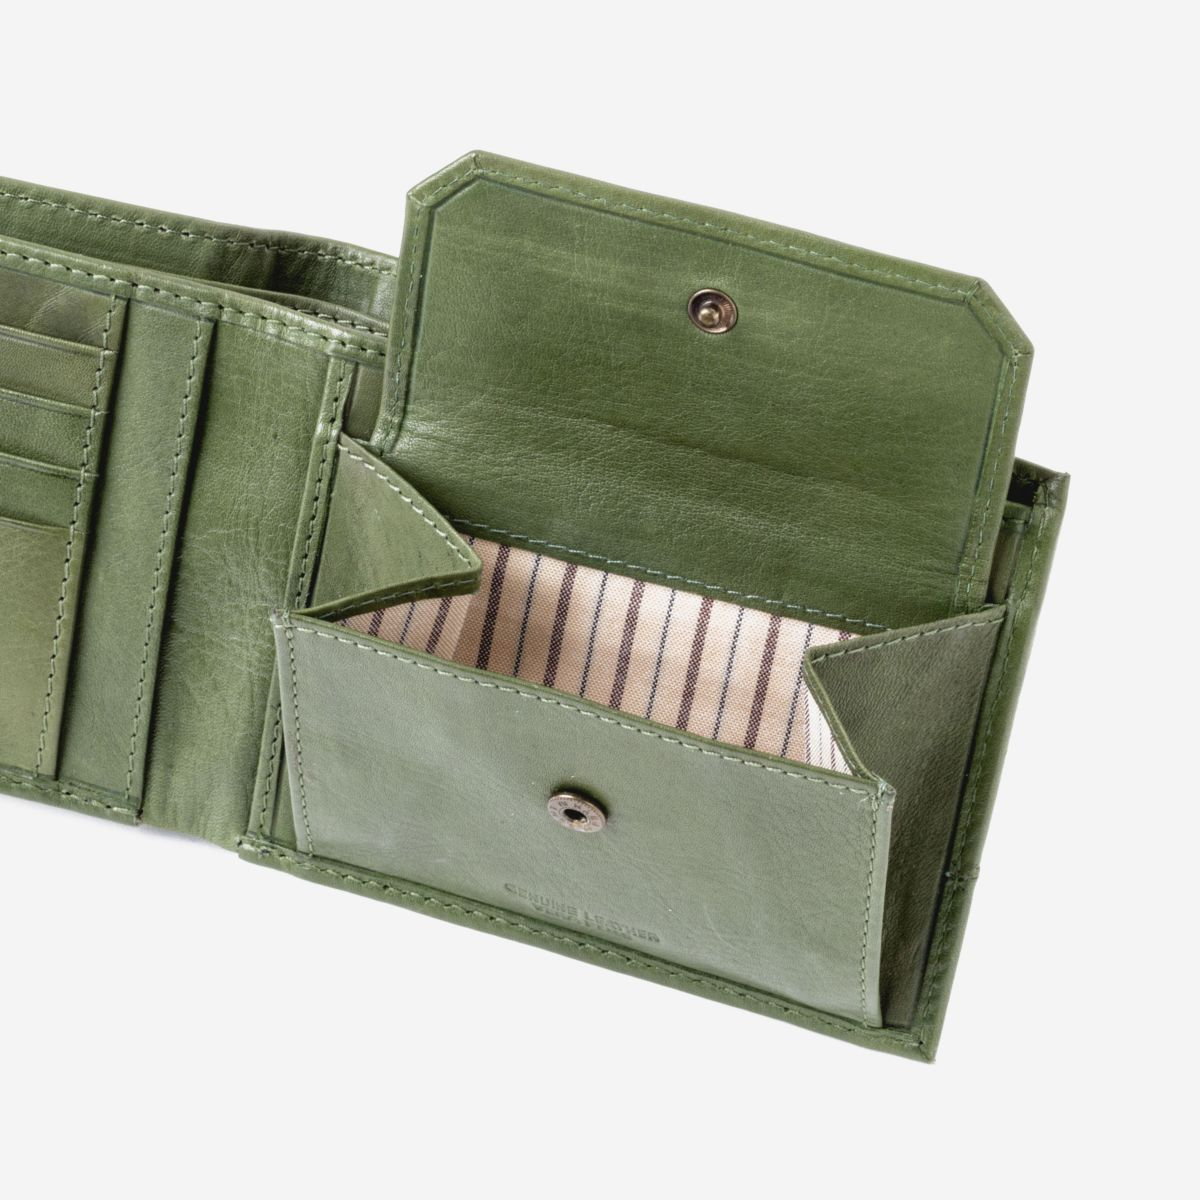 DuDu Mens Leather Wallet with Coin Pocket - Green